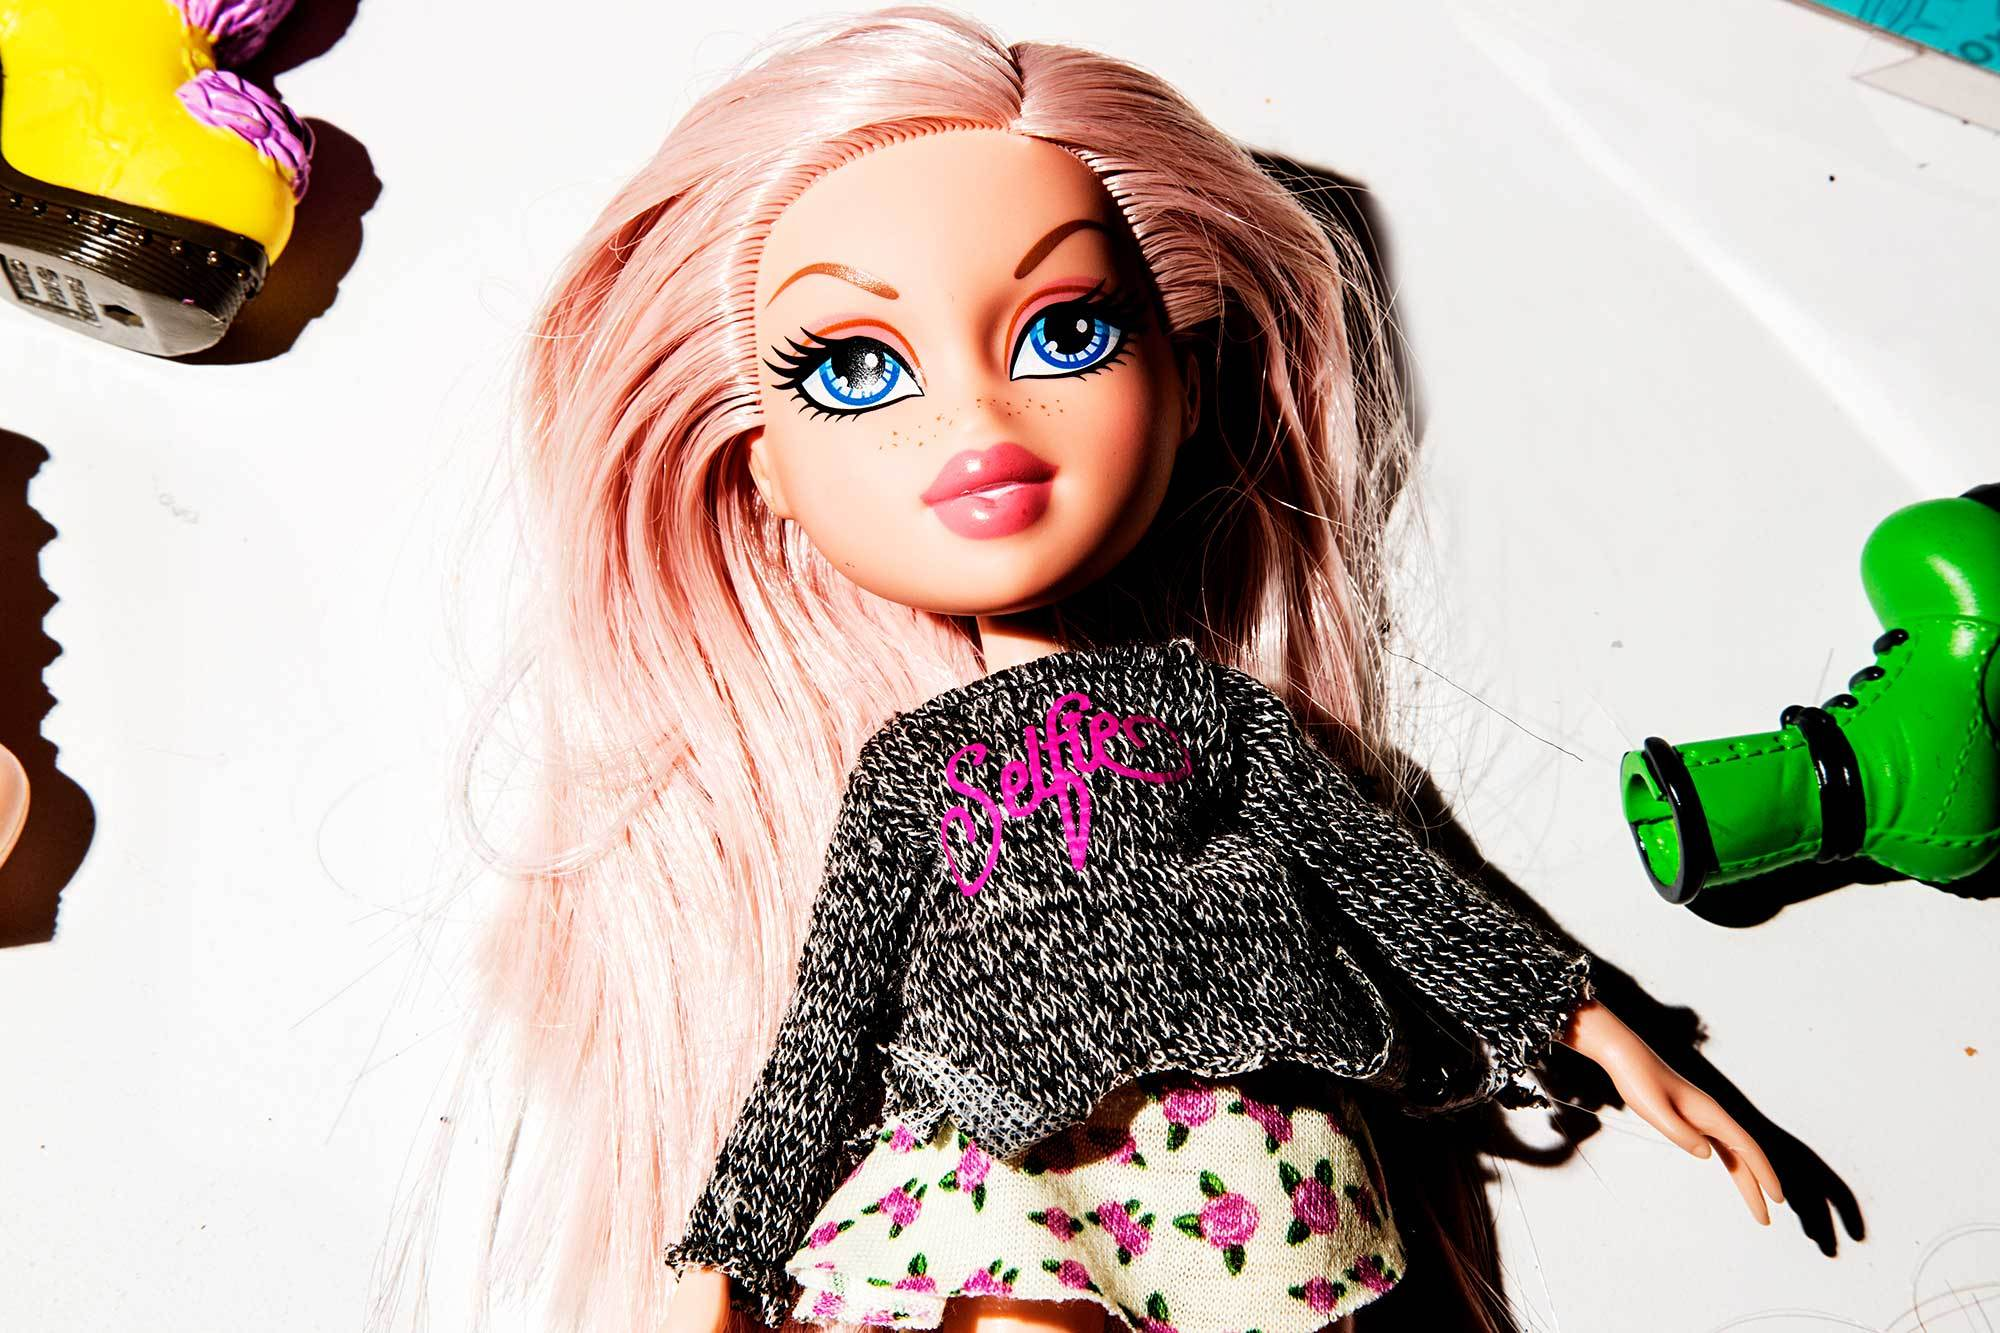 Uncategorized Bratz Doll Images meet the designers behind controversial bratz dolls broadly campana speaks from a public relations standpoint but when jasmin discusses she becomes passionate her voice rises